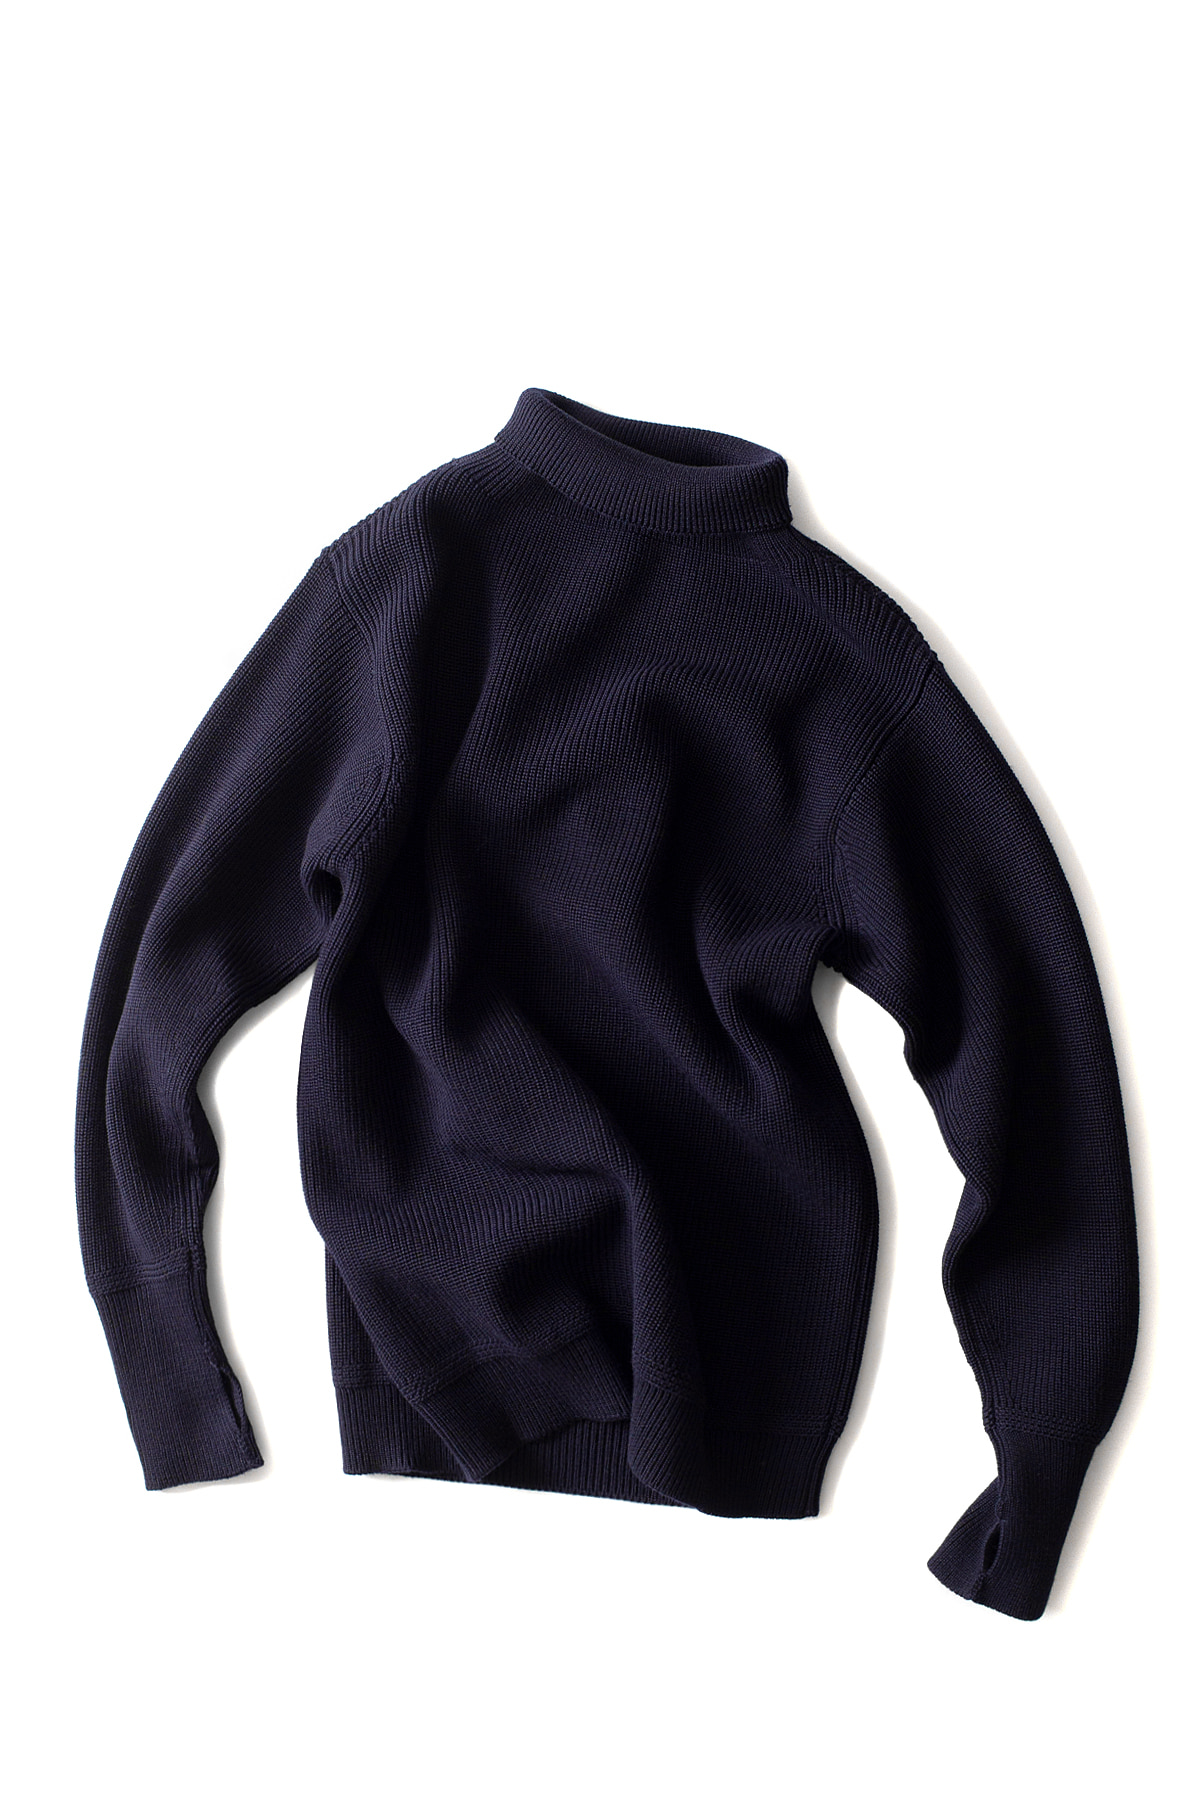 Andersen-Andersen : Sailor Turtleneck (Navy)